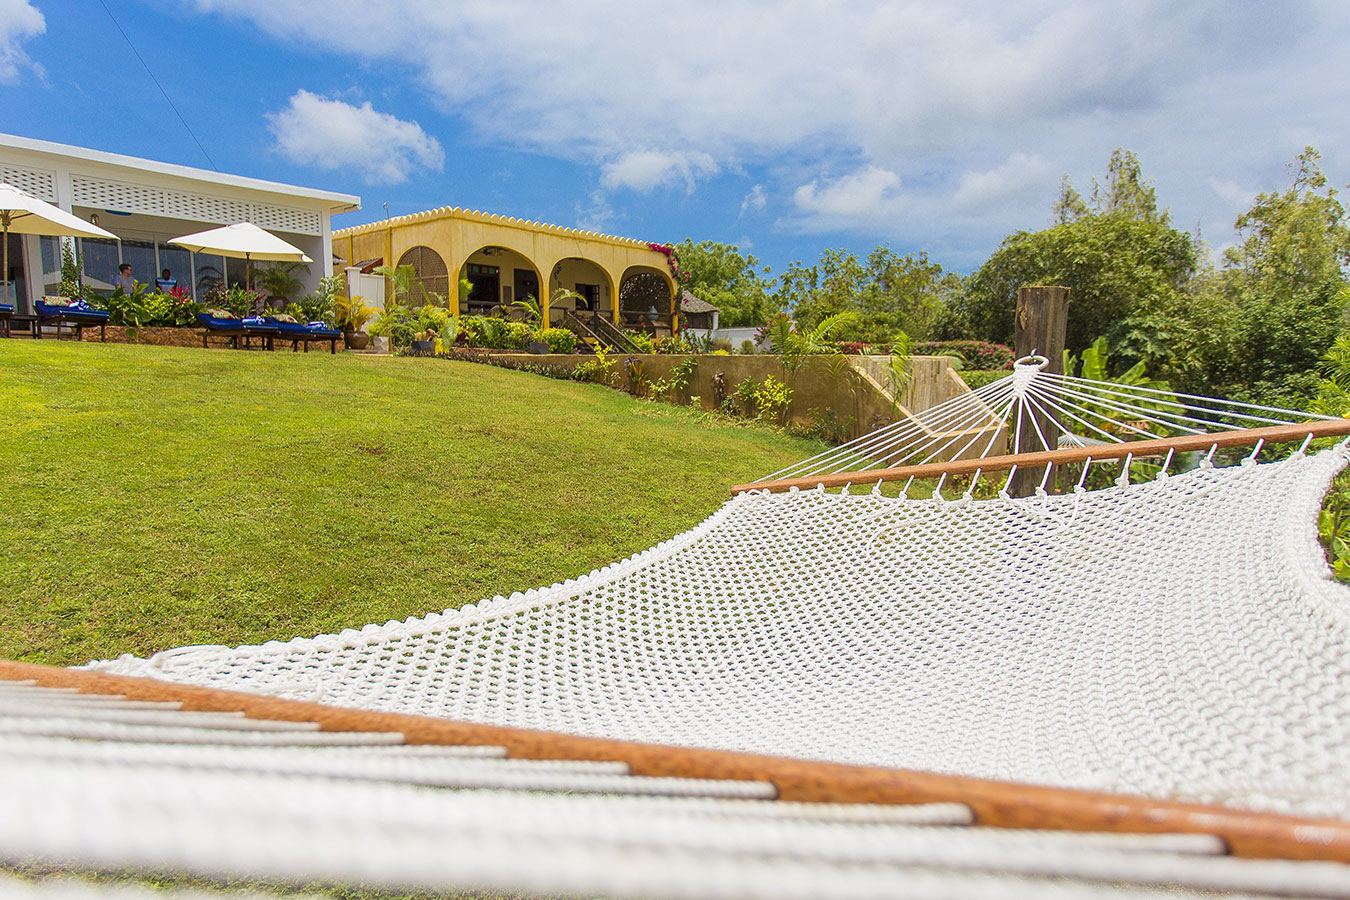 The villas are situated on a small cliff that overlooks the Indian Ocean with the peaceful village of Kidoti nearby.